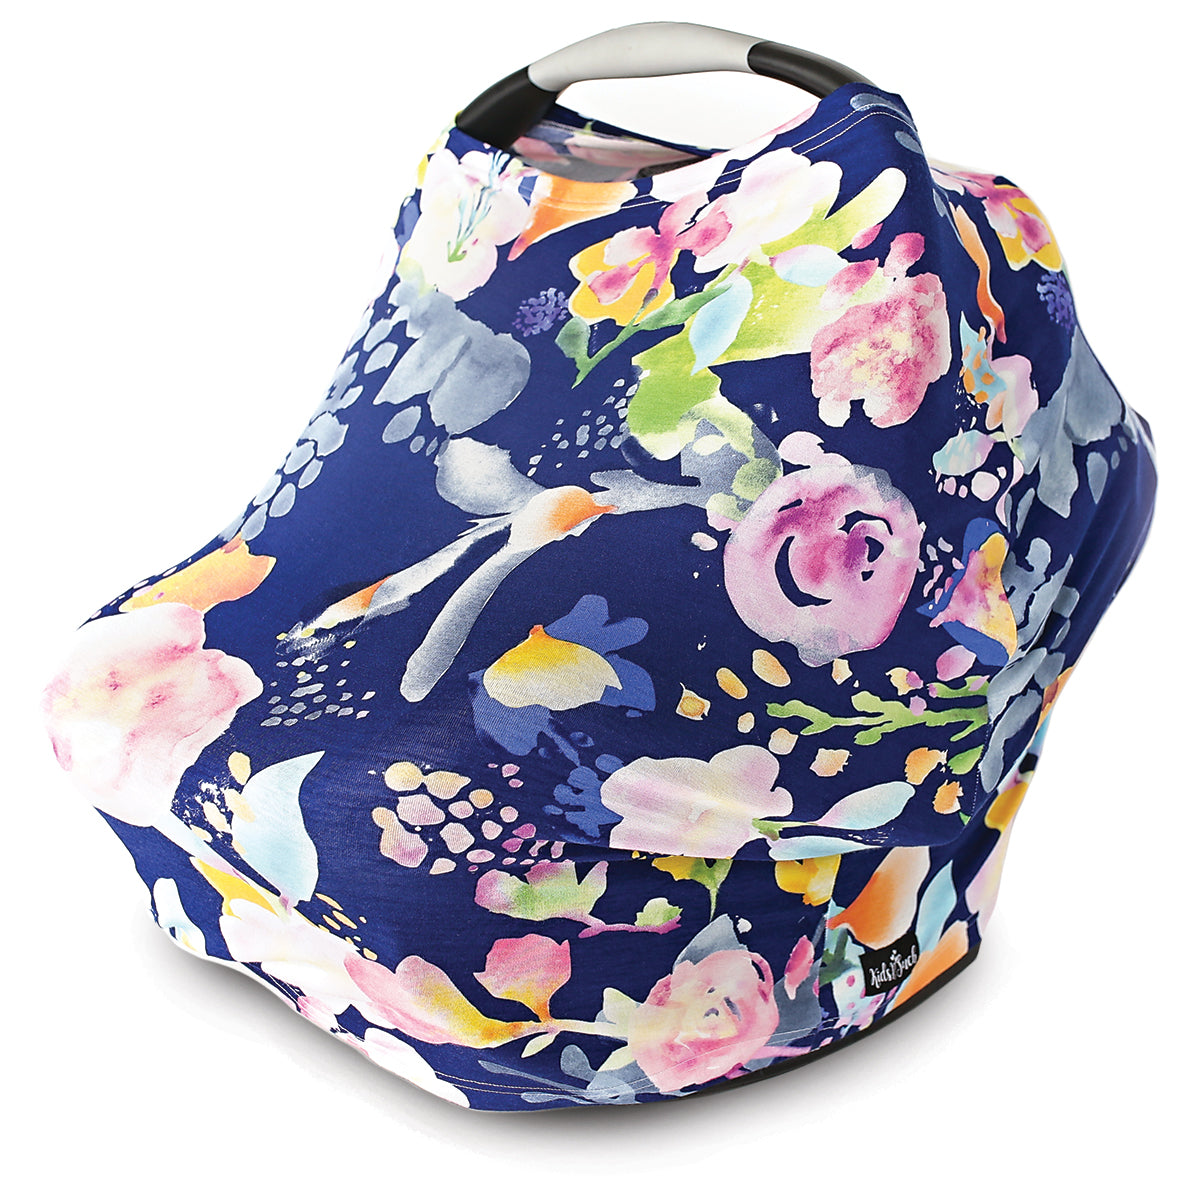 Stretchy Multi Use Car Seat Canopy Nursing Cover Shopping Cart In Pastel